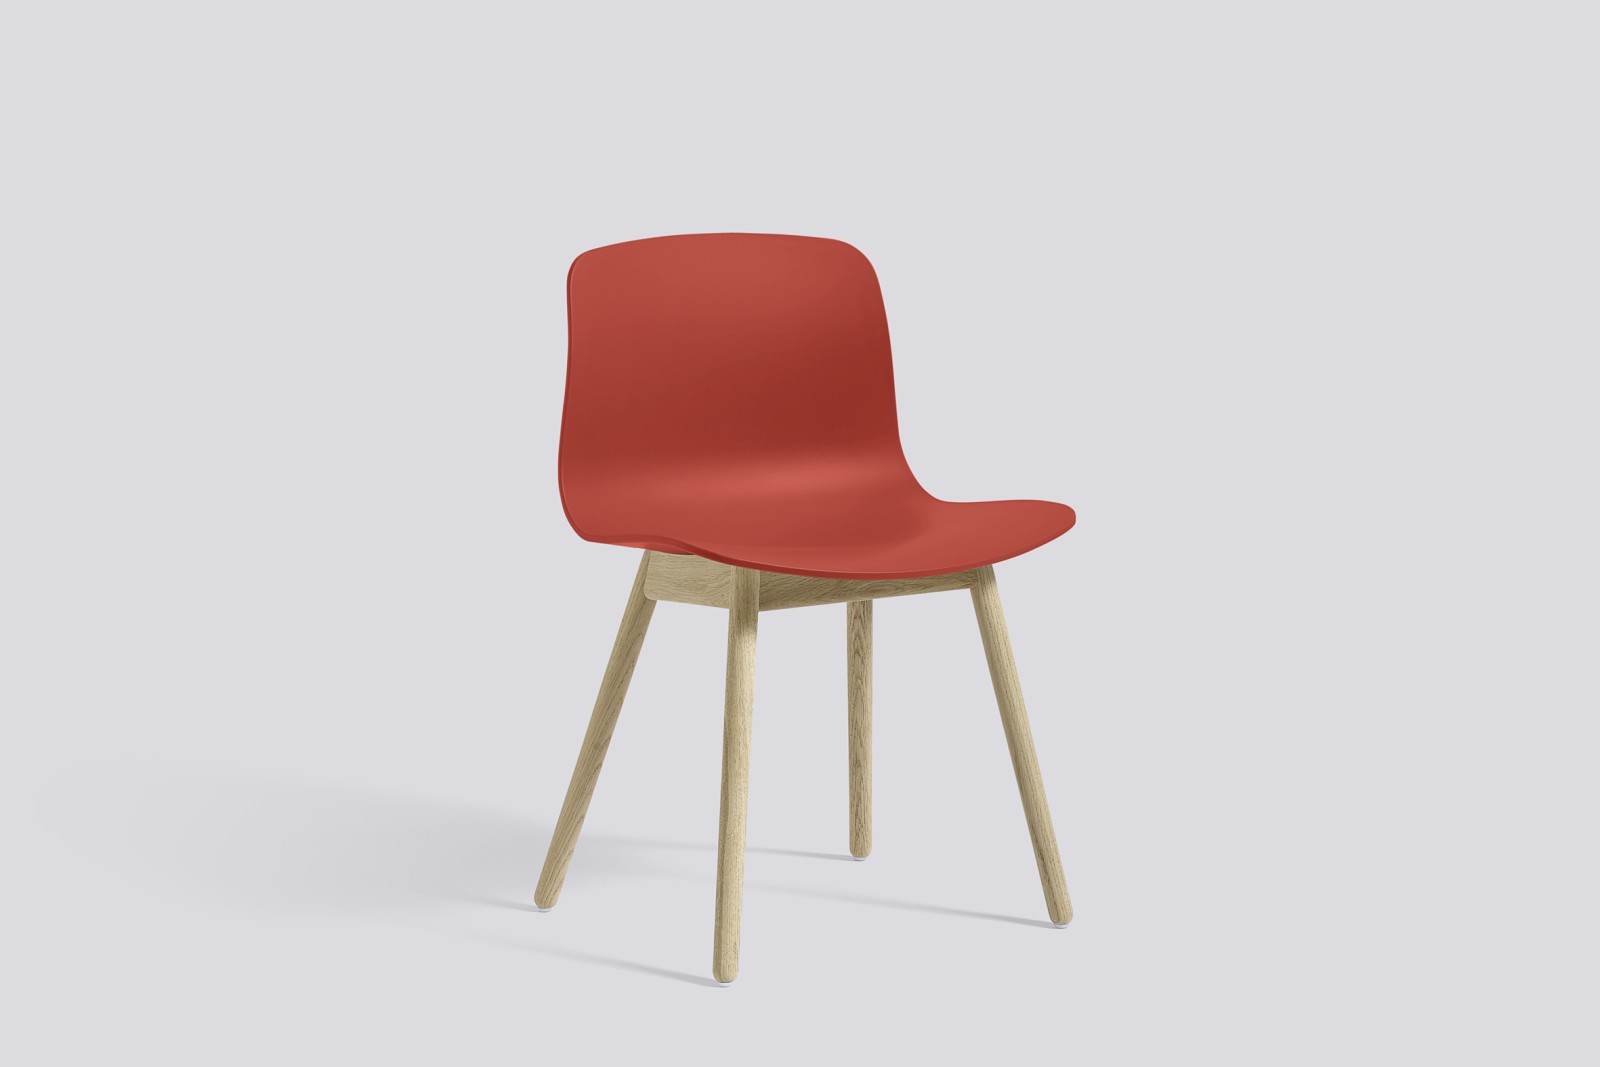 About A Chair AAC12 Warm Red Seat and Soap Treated Oak Base